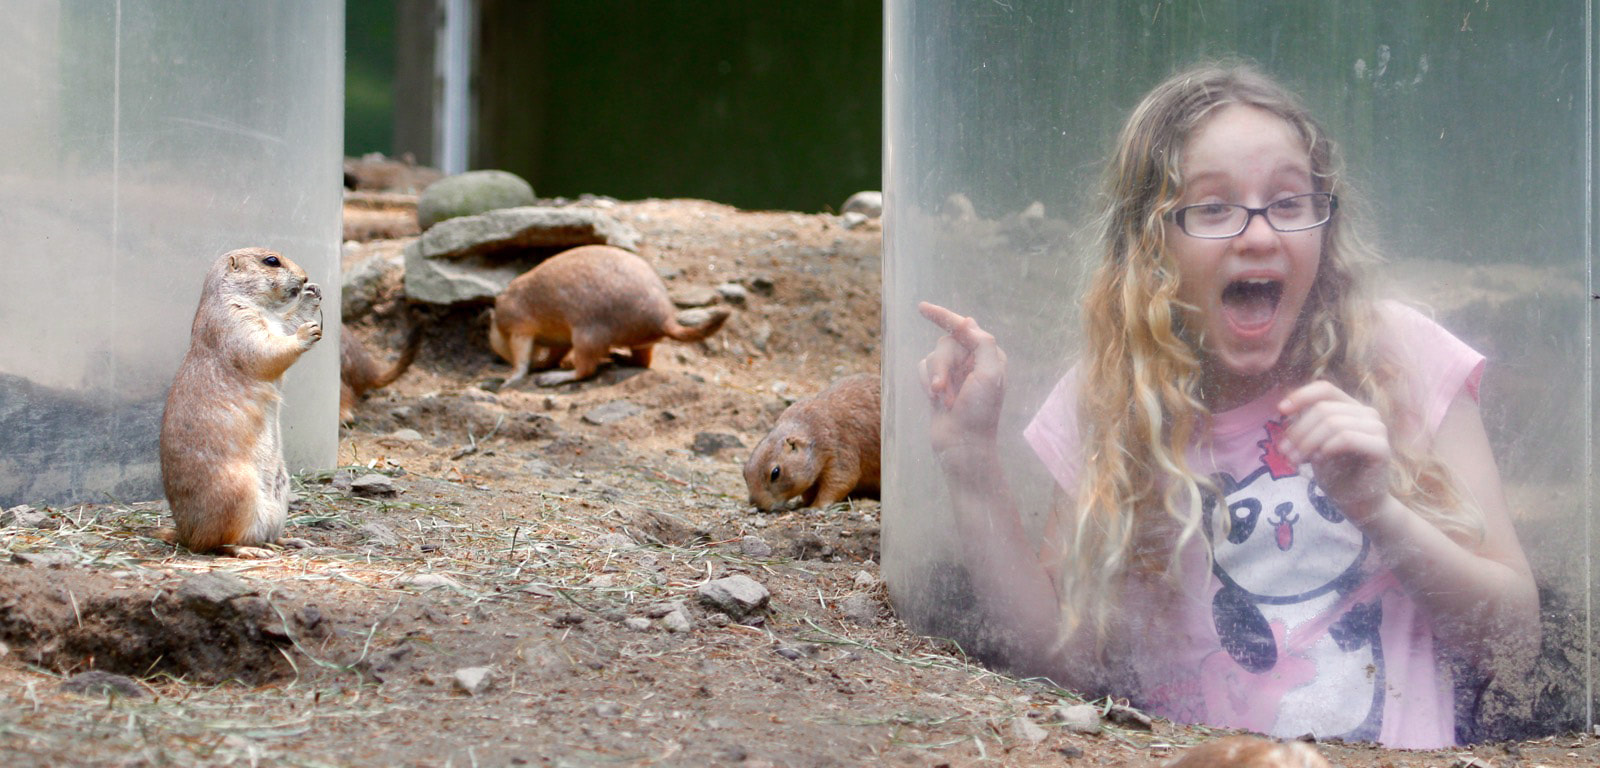 Child in Prairie Dog Tunnel surrounded by prairie dogs